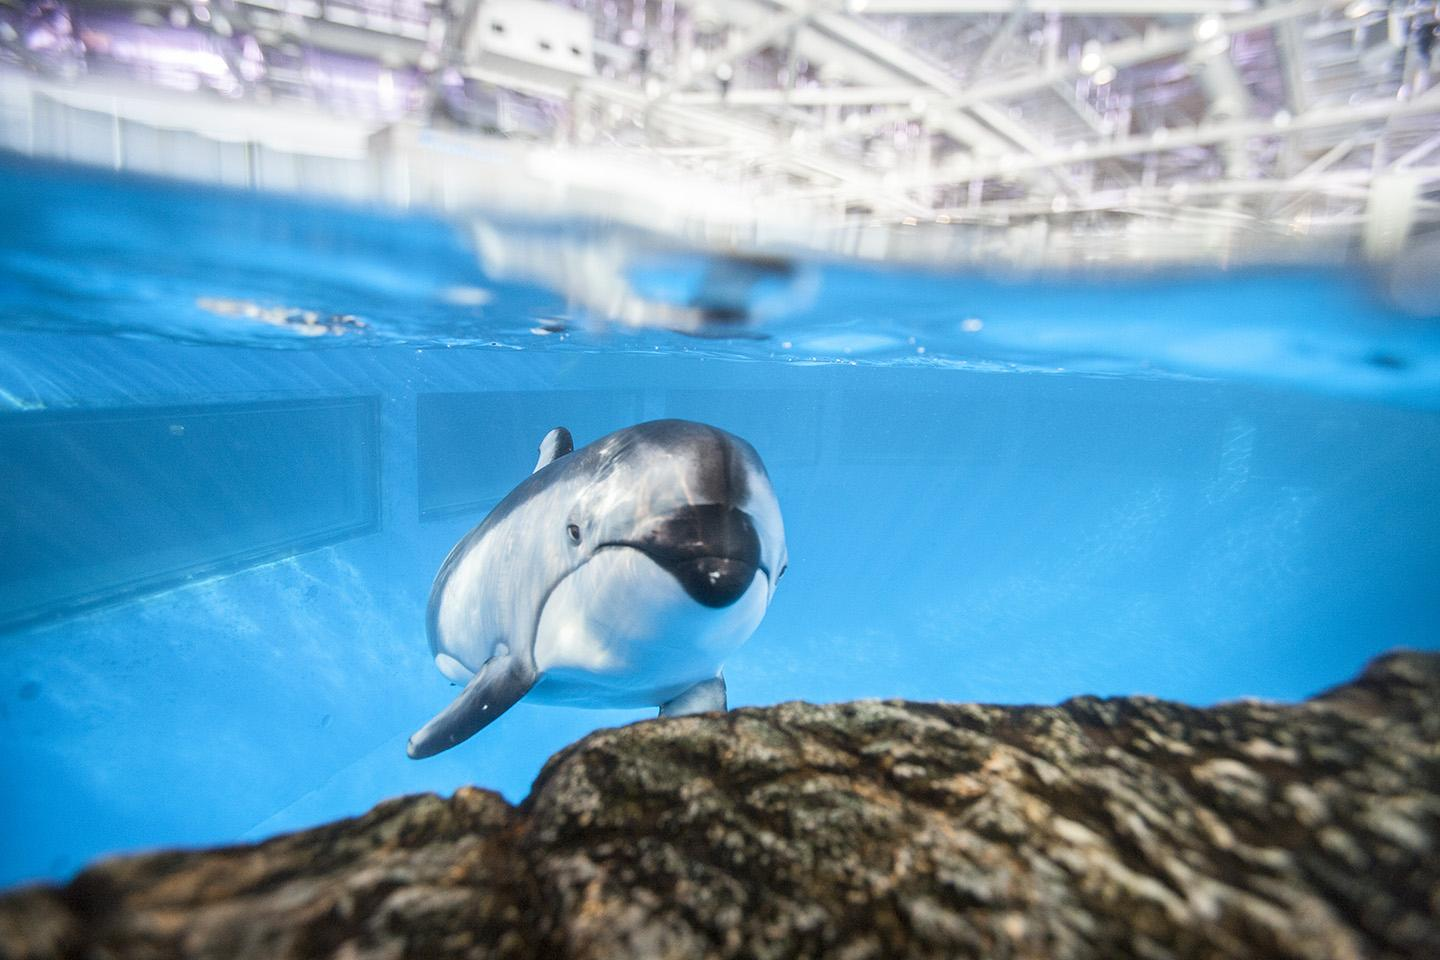 One of Shedd Aquarium's Pacific white-sided dolphins, Piquet, is expected to give birth in the fall. (Brenna Hernandez / Shedd Aquarium)